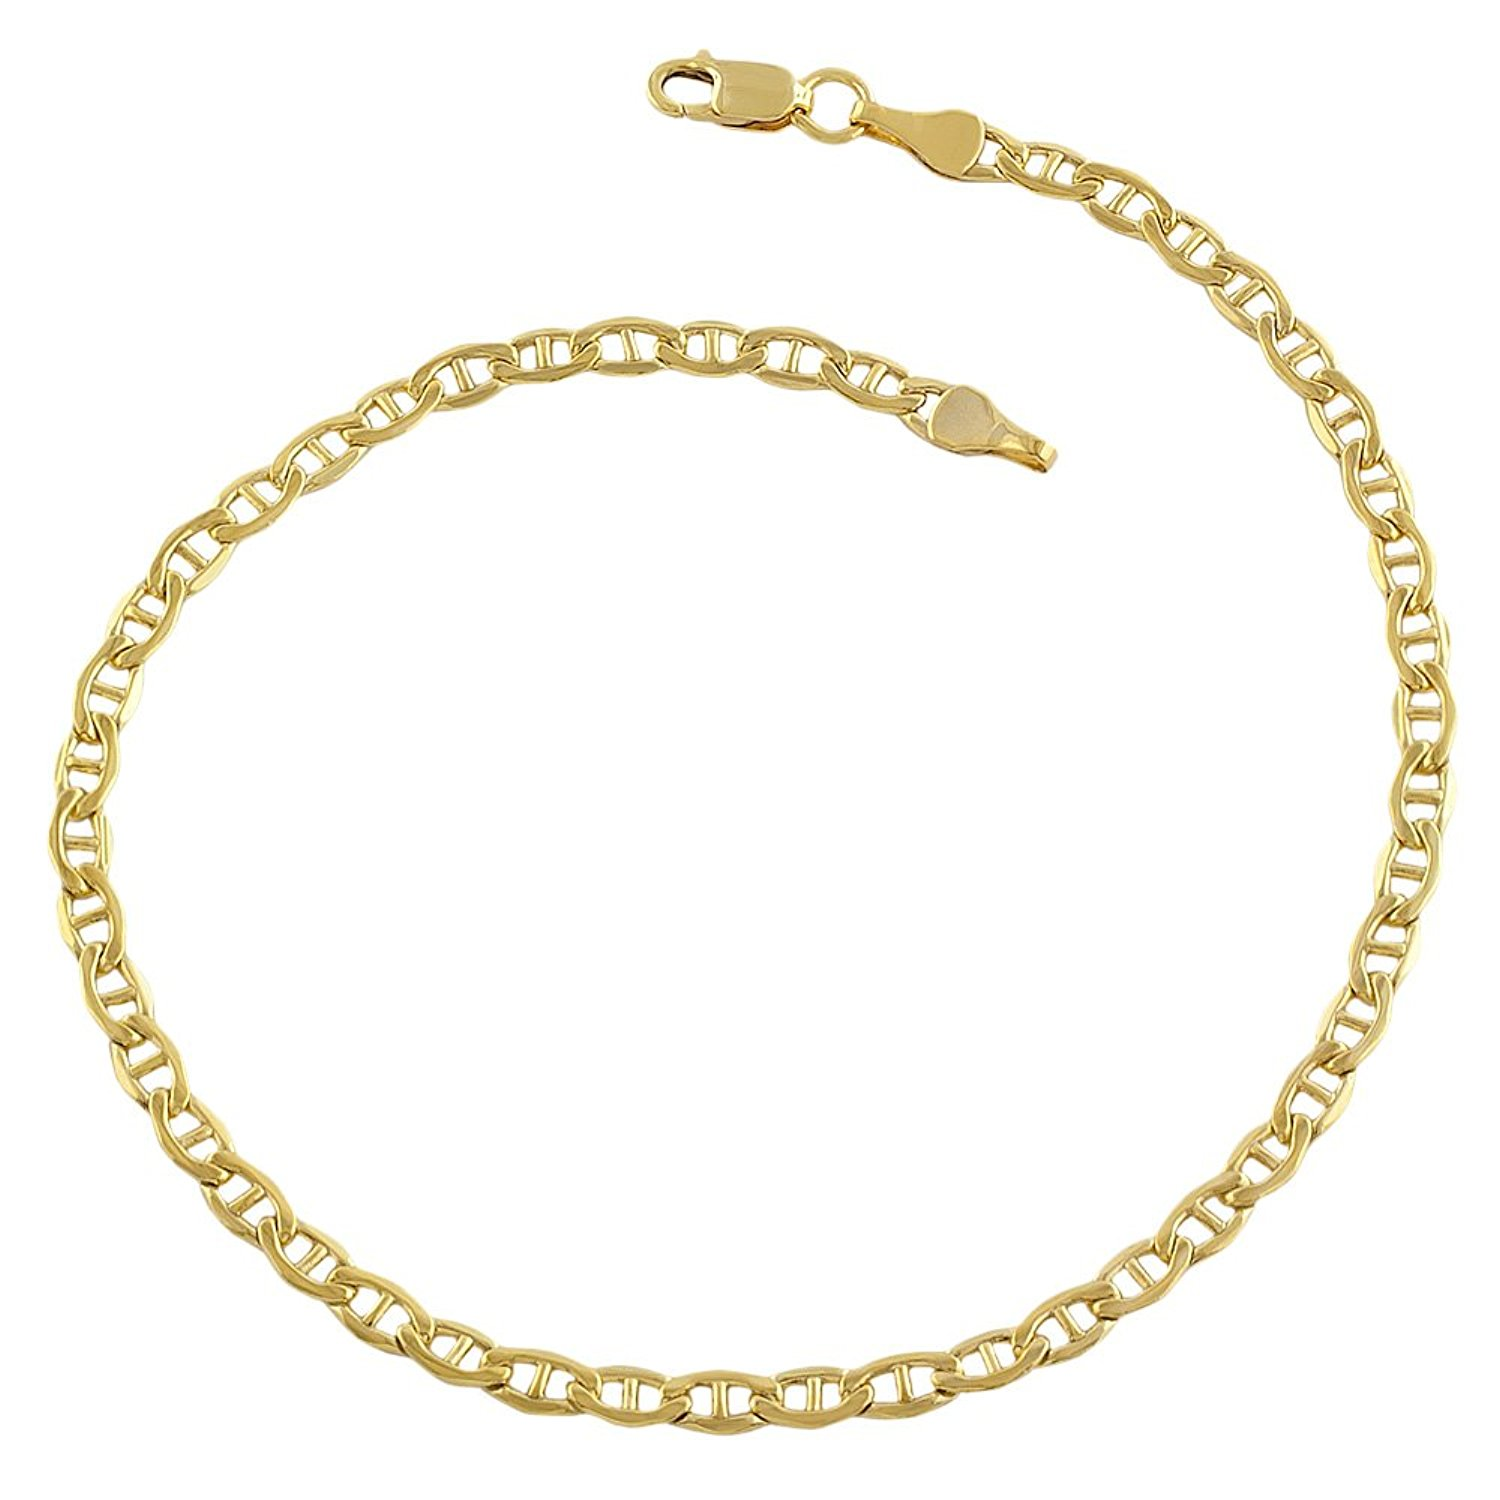 14K Yellow Gold Filled Solid Mariner Chain Bracelet, 3.2mm, 8.5″